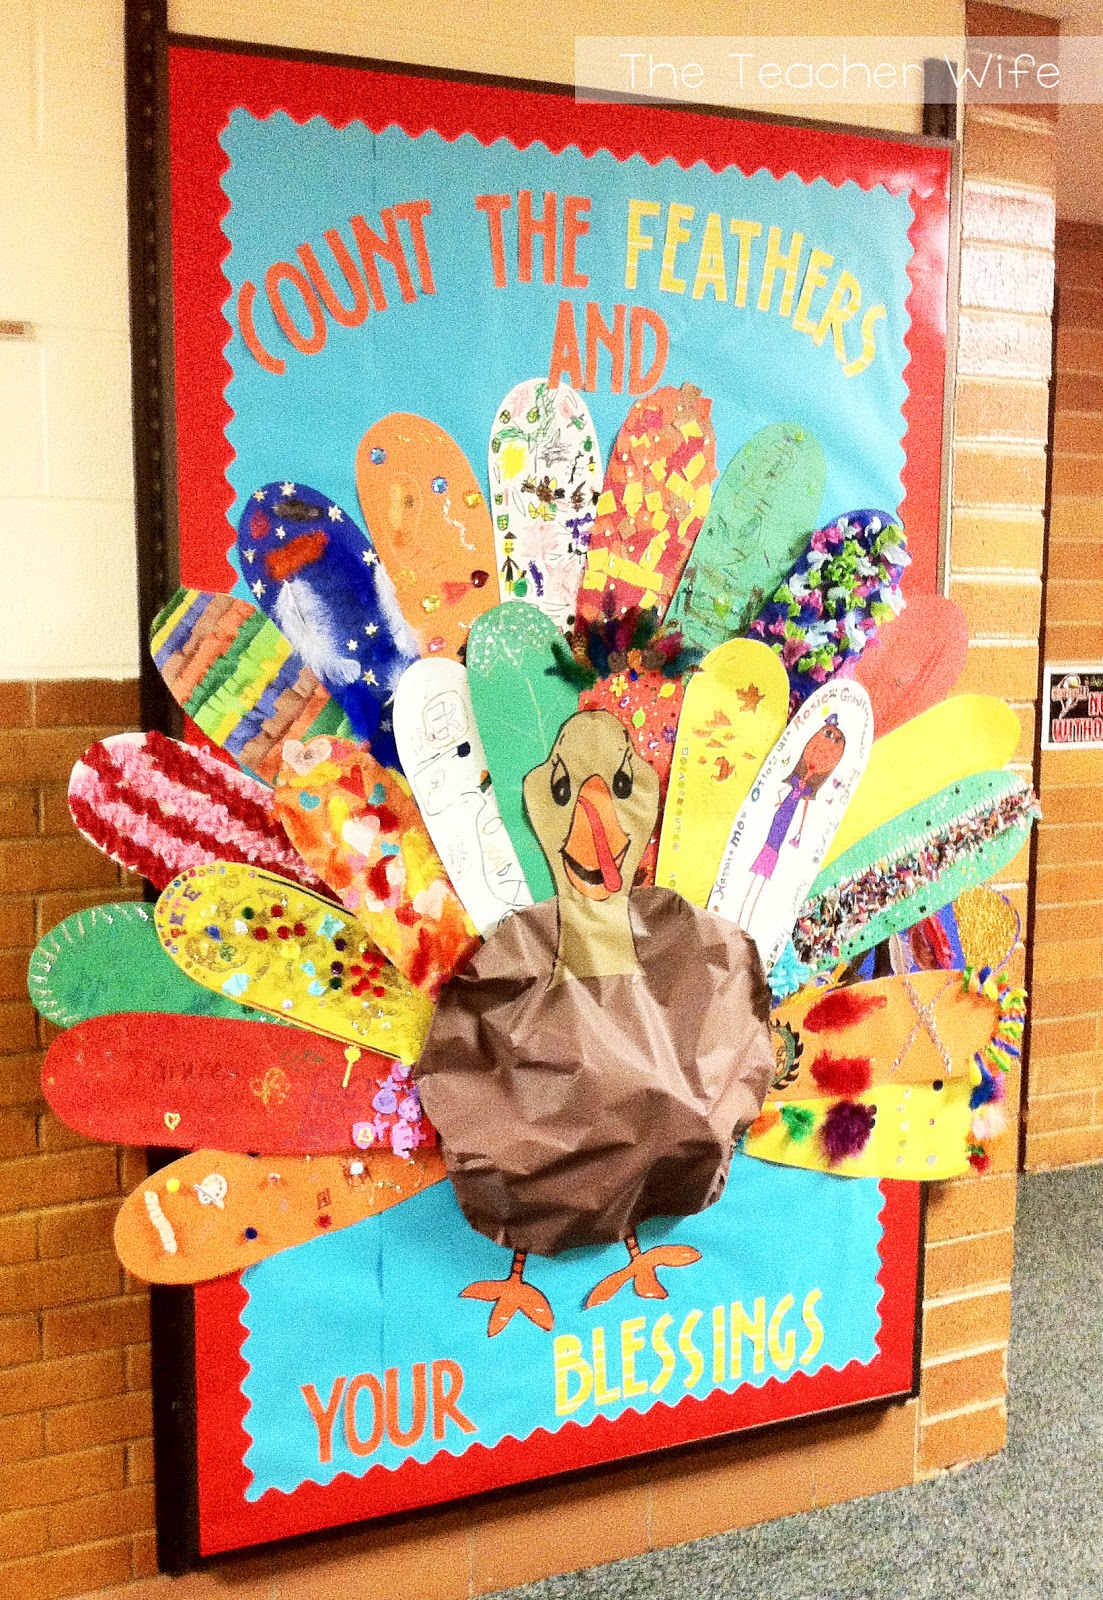 Classroom Notice Board Ideas ~ The teacher wife thanksgiving bulletin board